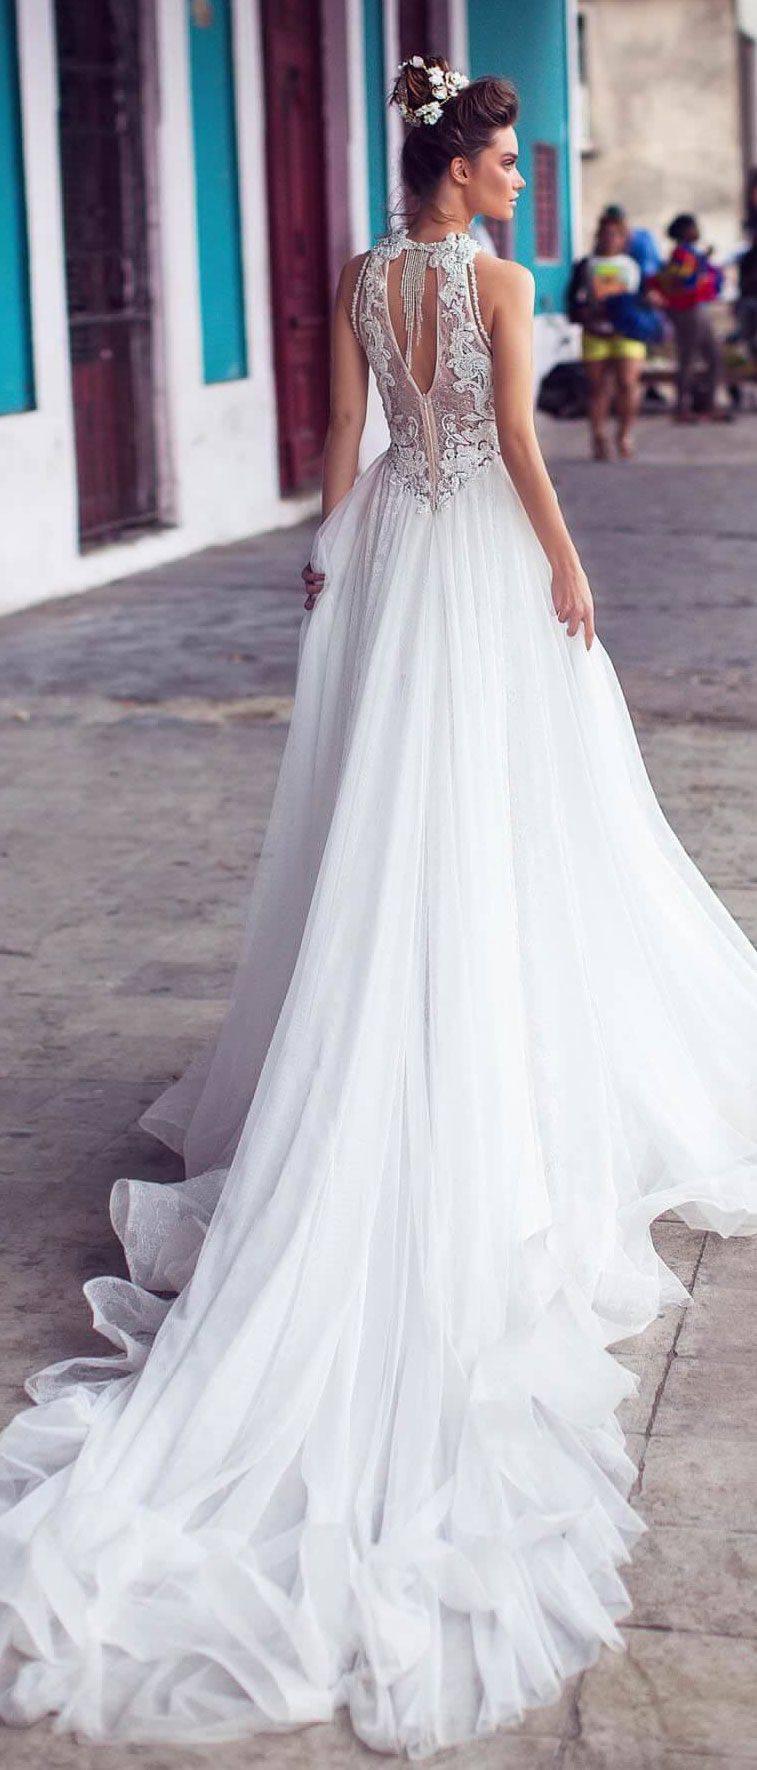 Lorenzo Rossi wedding dress 2018